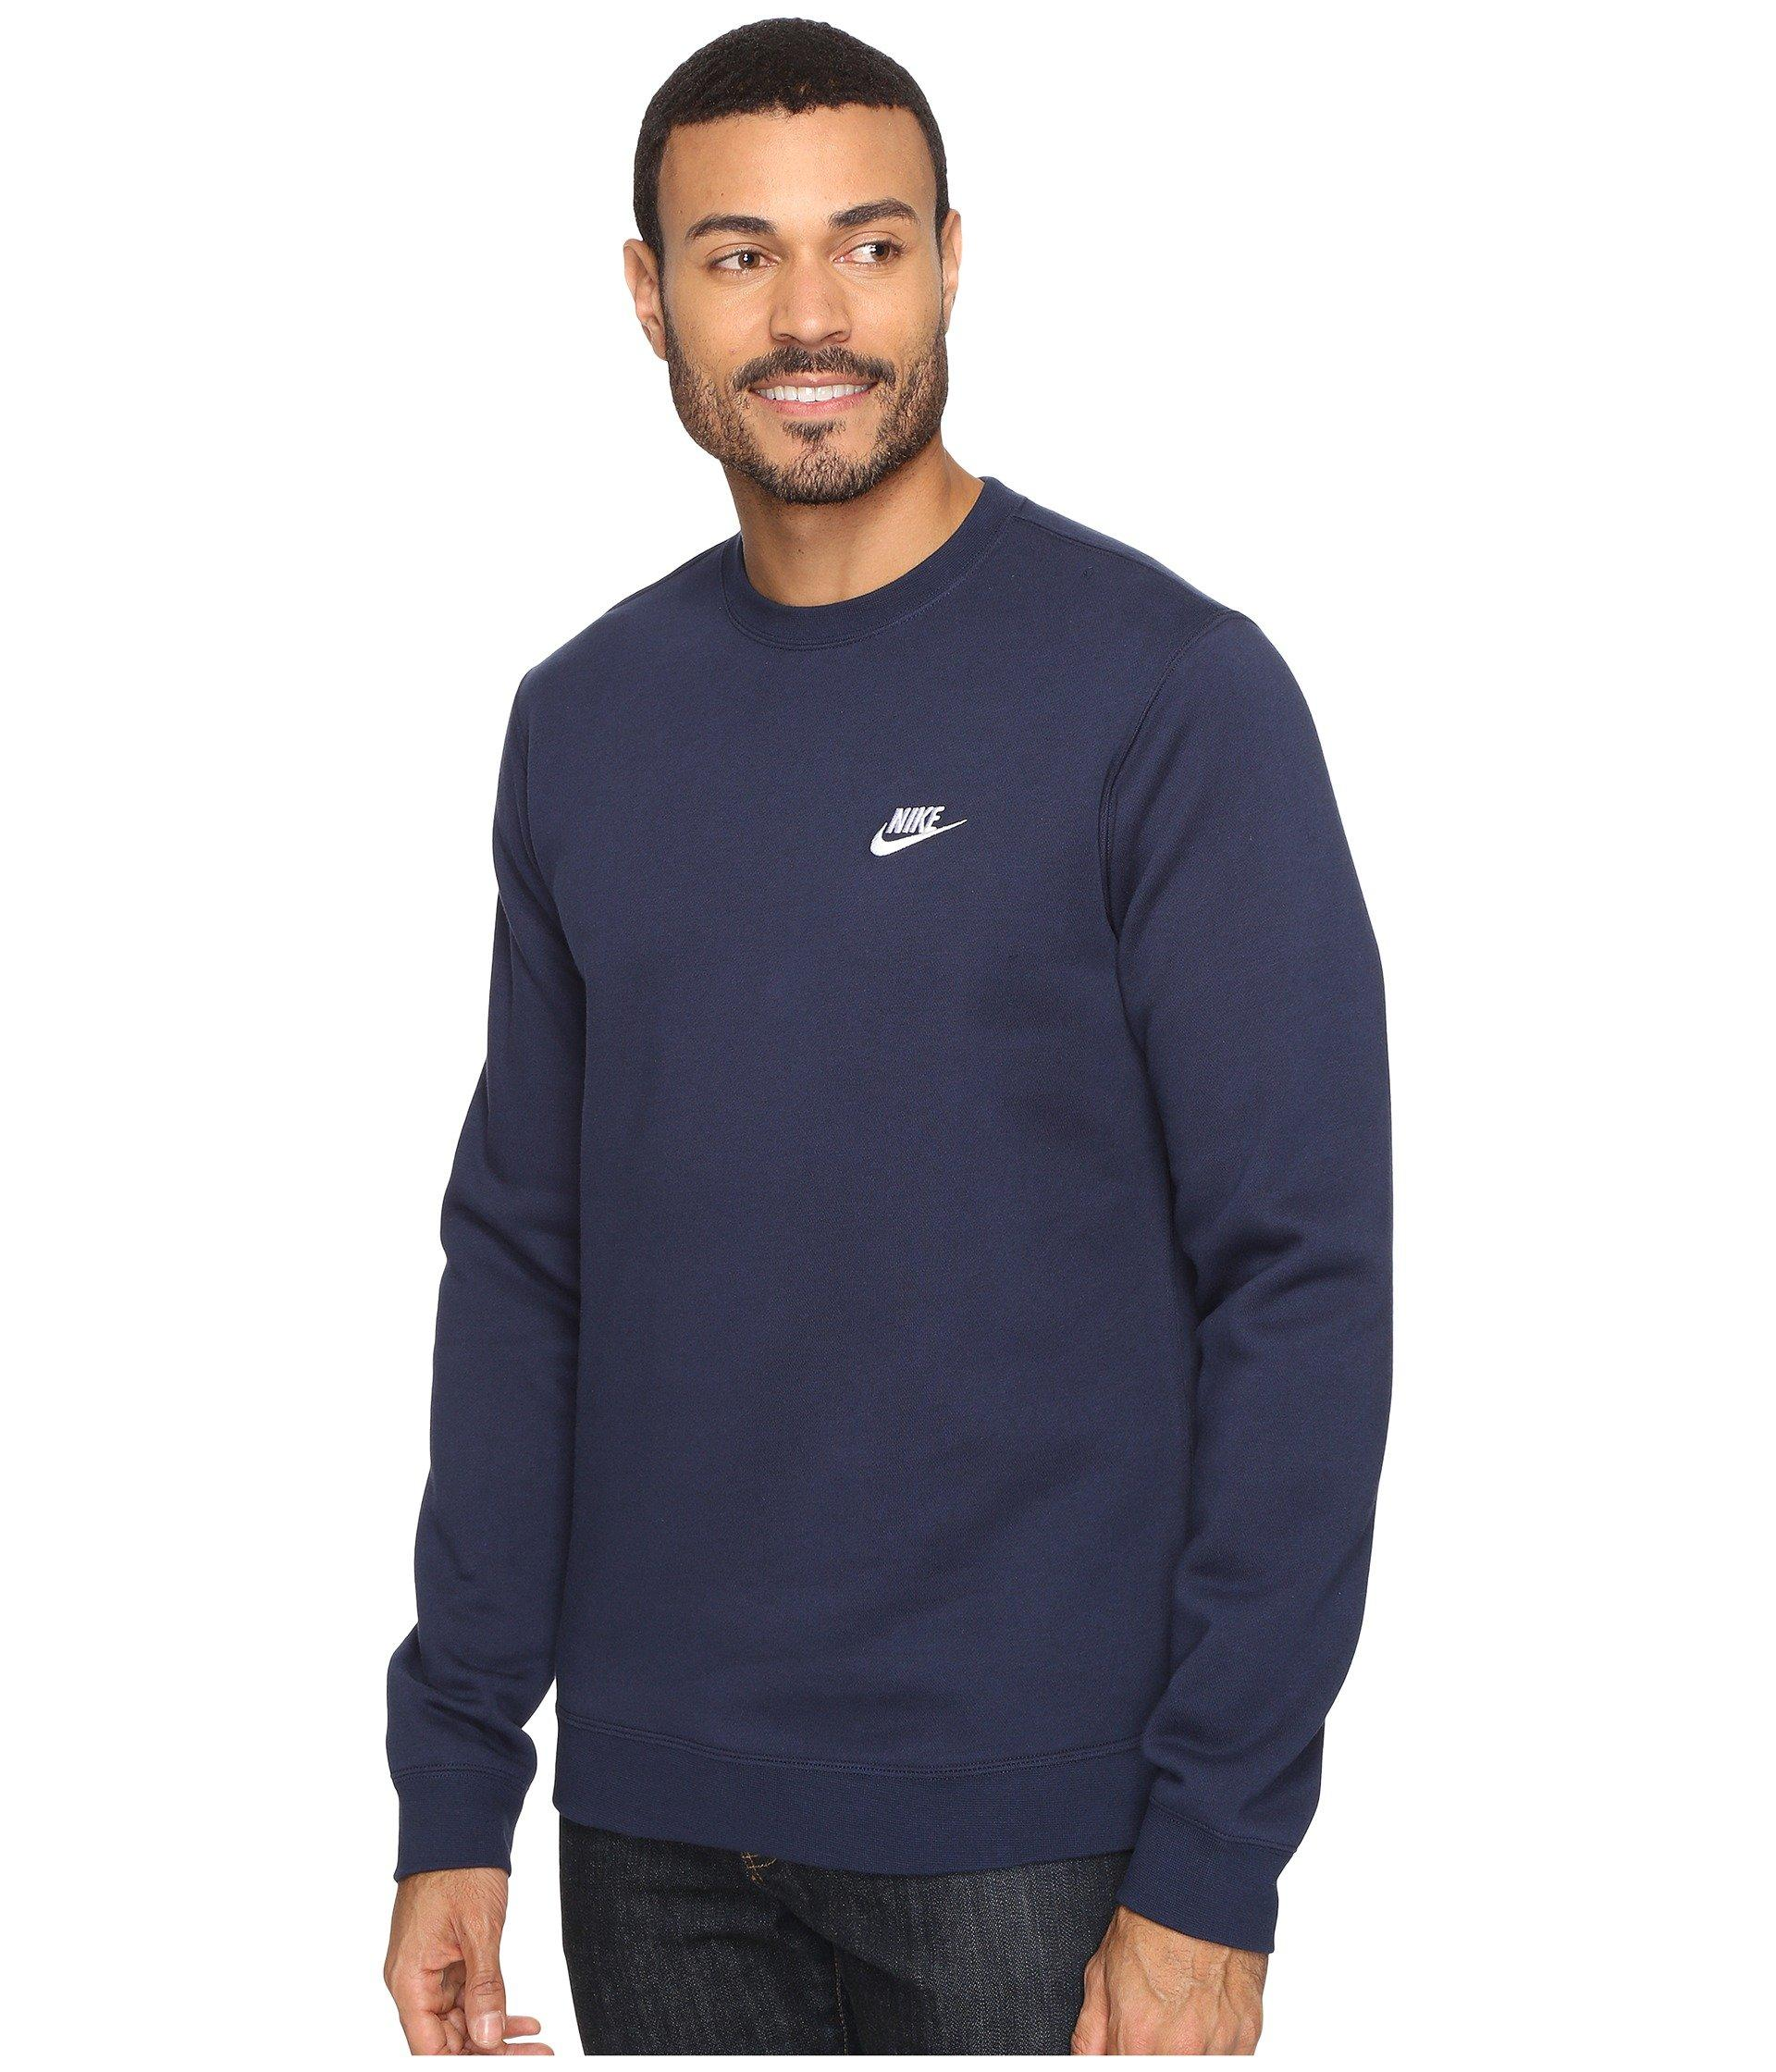 9acf74707f31 Lyst - Nike Club Fleece Pullover Crew in Blue for Men - Save 22%